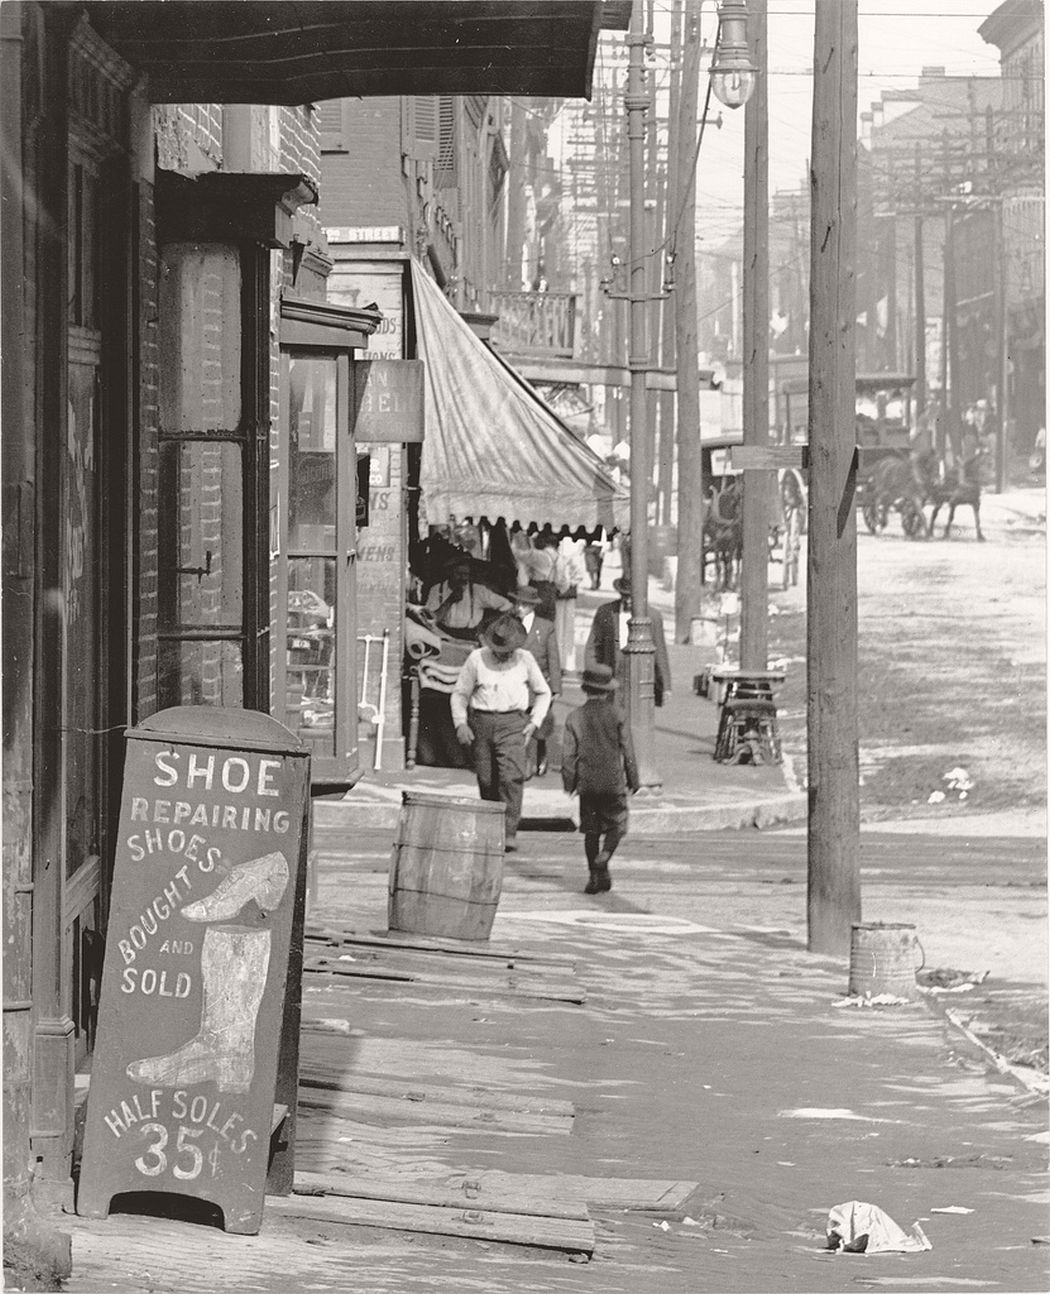 Sidewalk scene on a street in St. Louis, ca. 1900s